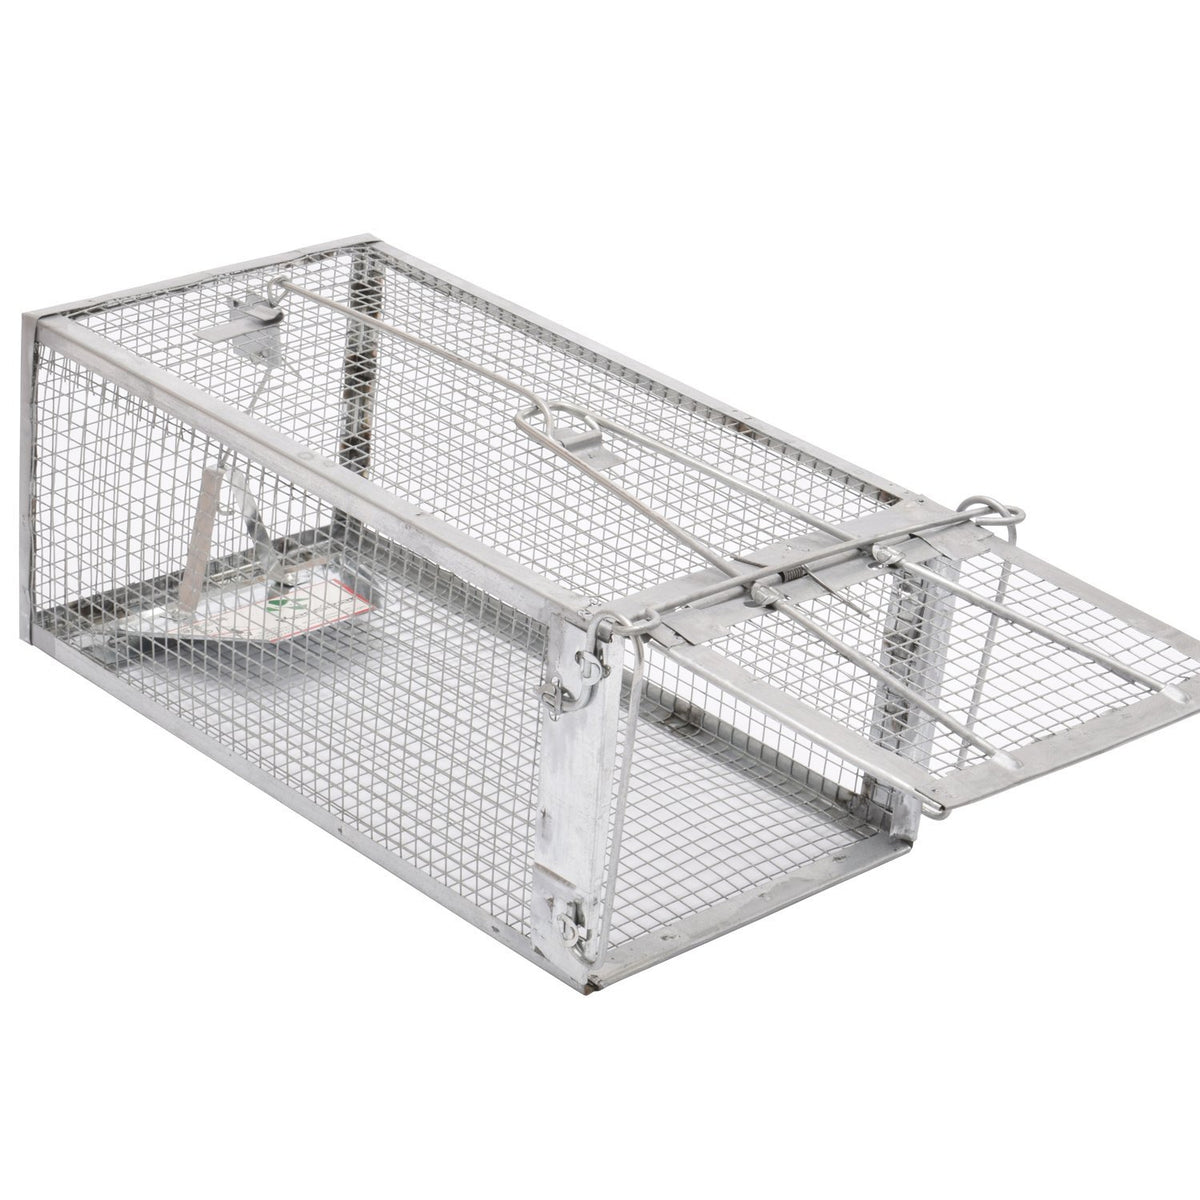 Catch /& Release Humane Animal and Rodent Cage Trap for Rats Chipmunks Squirrel